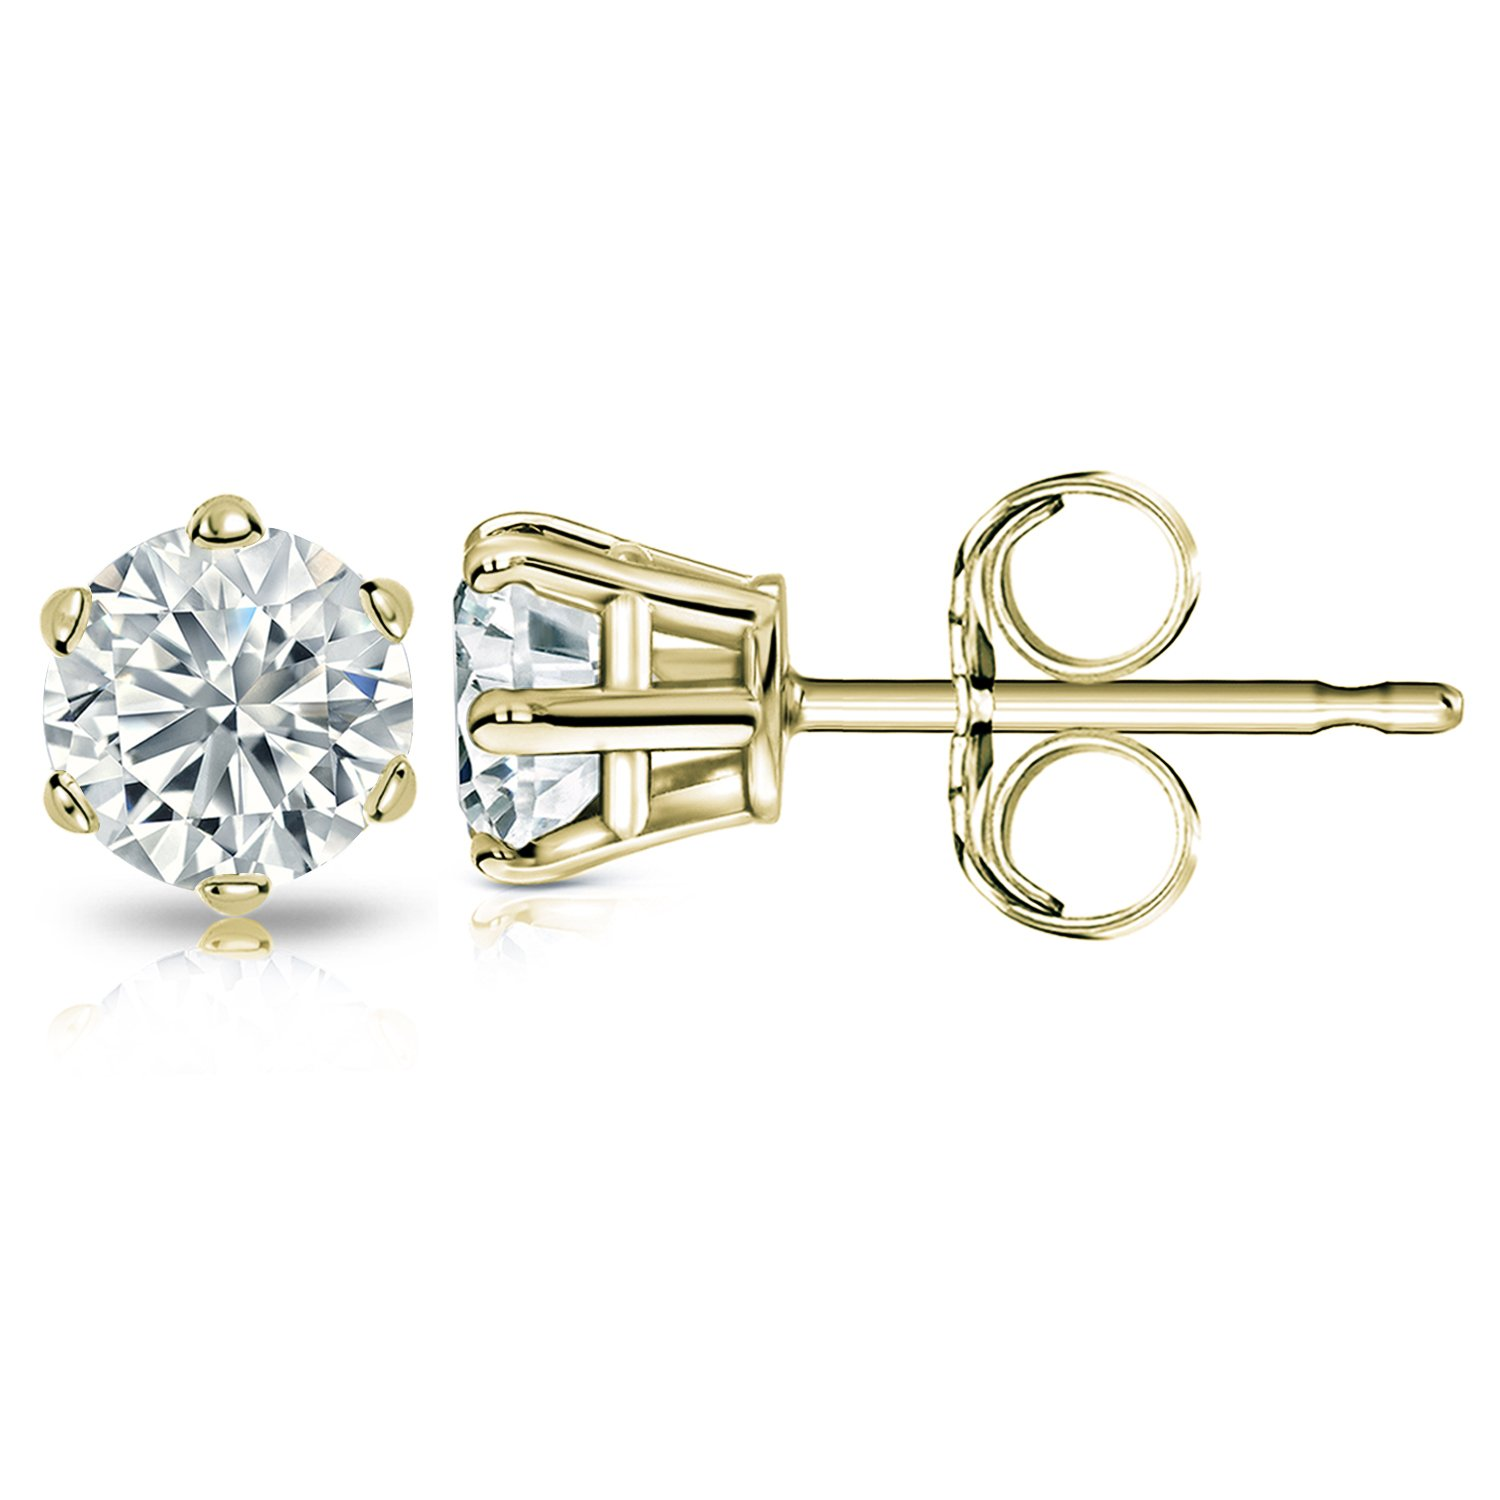 14k Yellow Gold Mens Round Diamond Simulant CZ Stud Earrings 6-Prong 1//2-2cttw,Excellent Quality